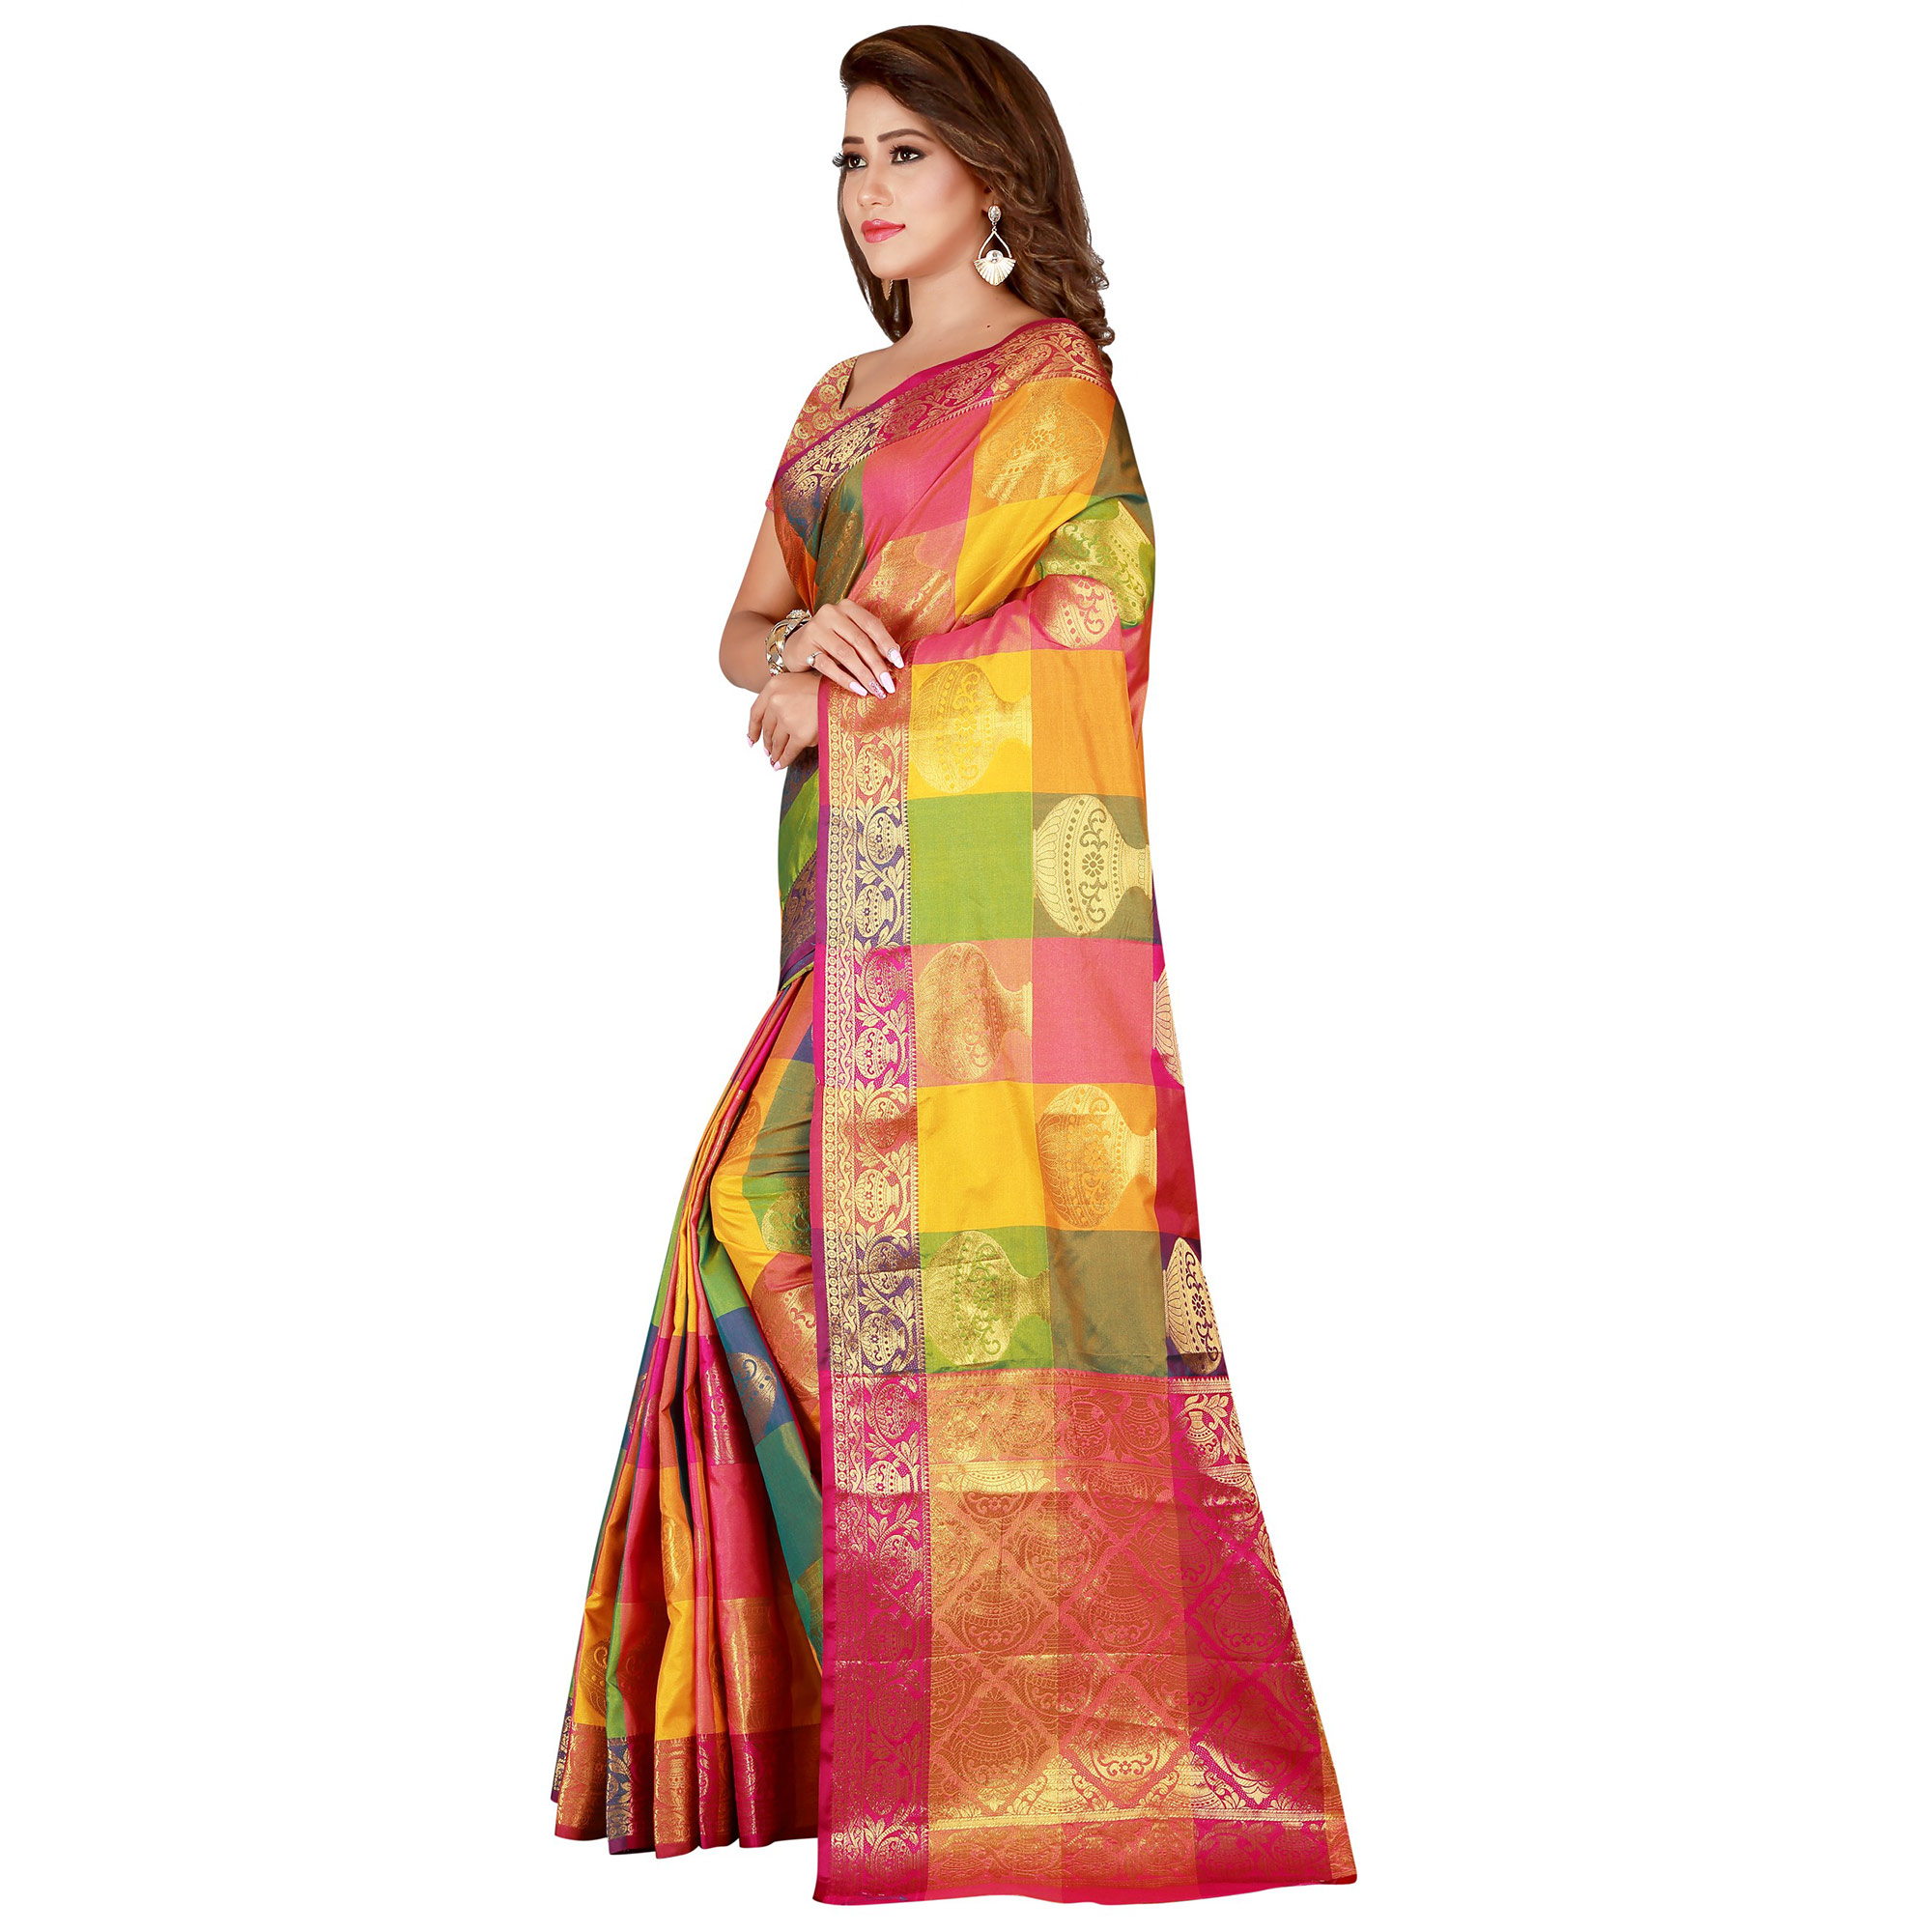 Marvellous Yellow-Pink Colored festive Wear Banarasi Silk Saree